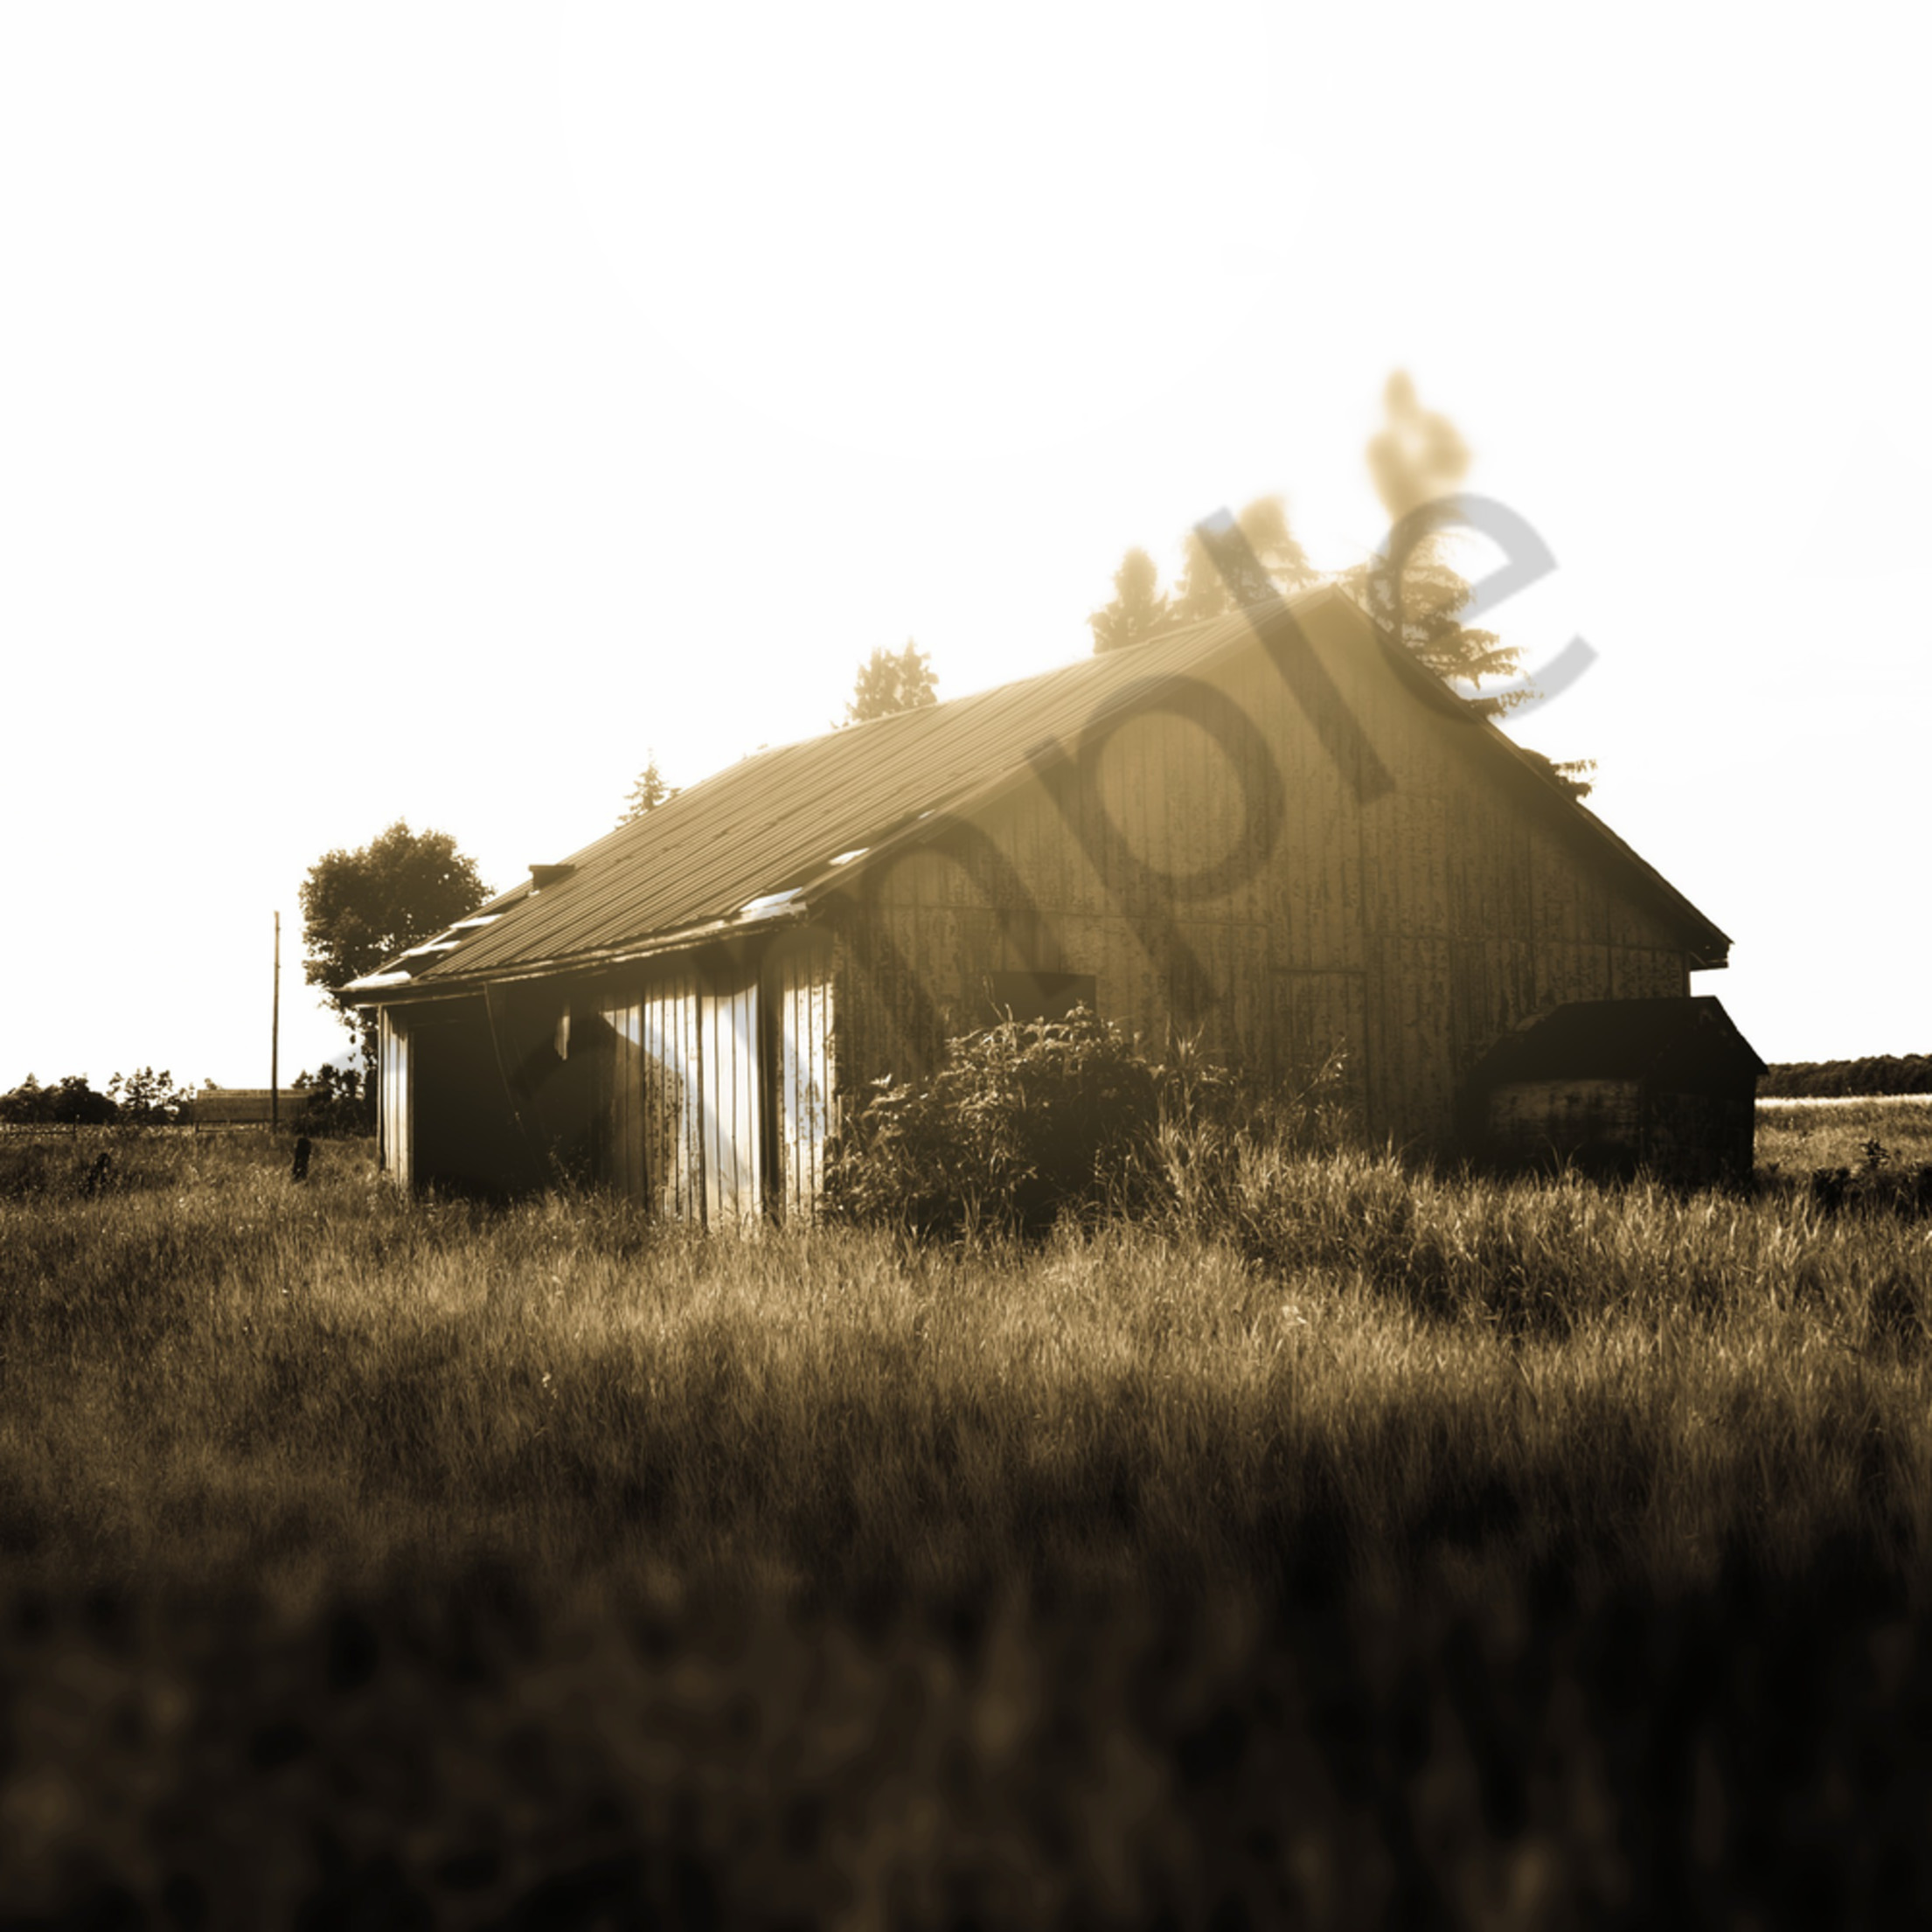 Abandoned shed in a field edg4xb